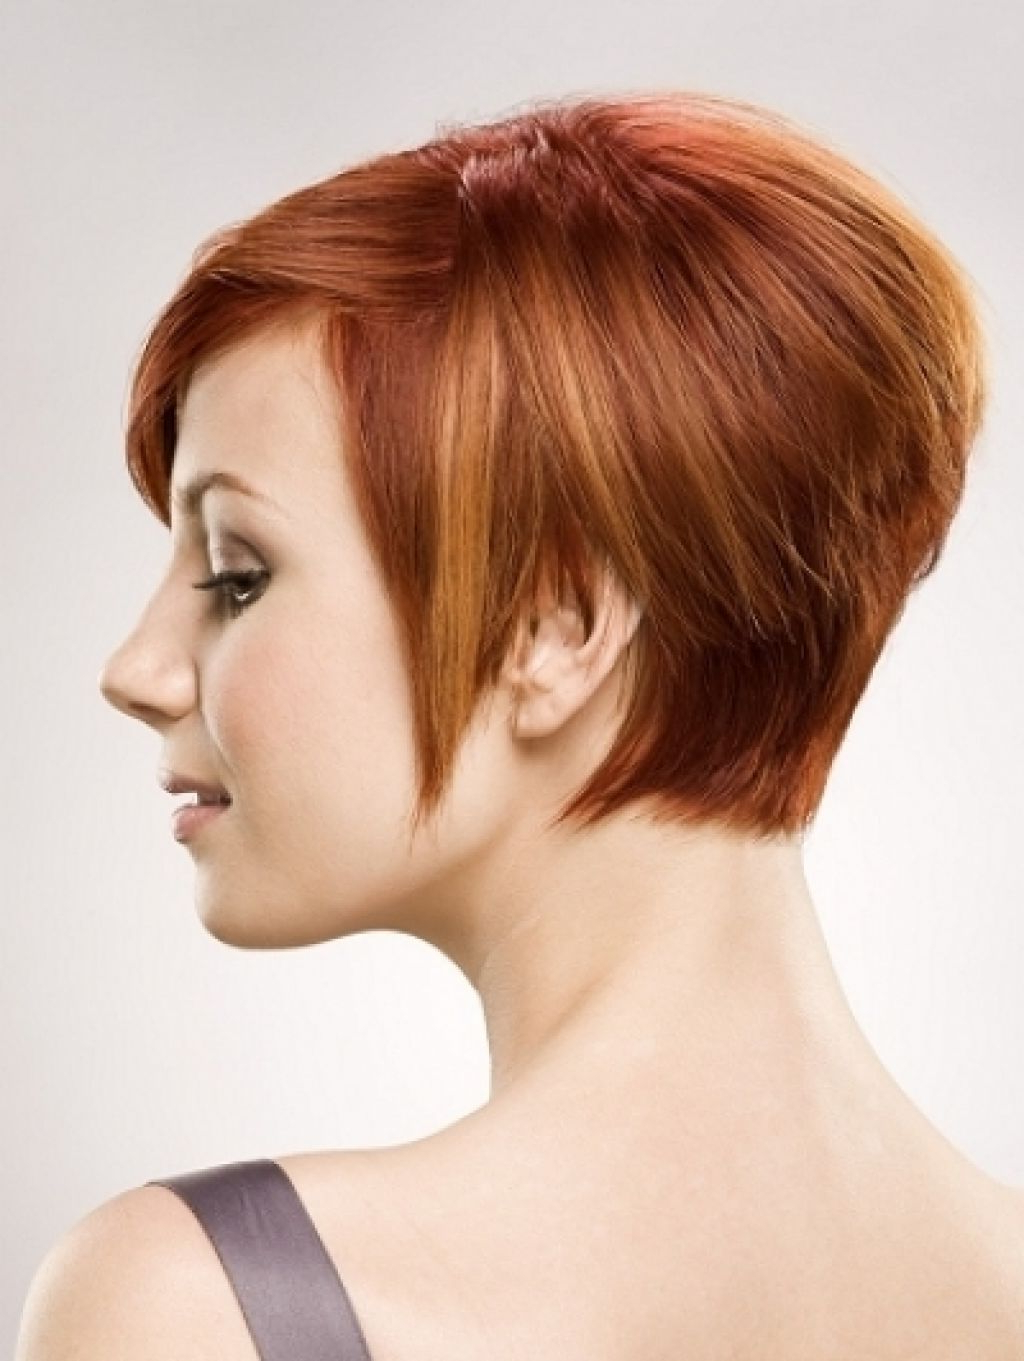 Short Black Hair With Red Highlights – Hairstyle For Women & Man Intended For Short Haircuts With Red And Blonde Highlights (View 10 of 25)